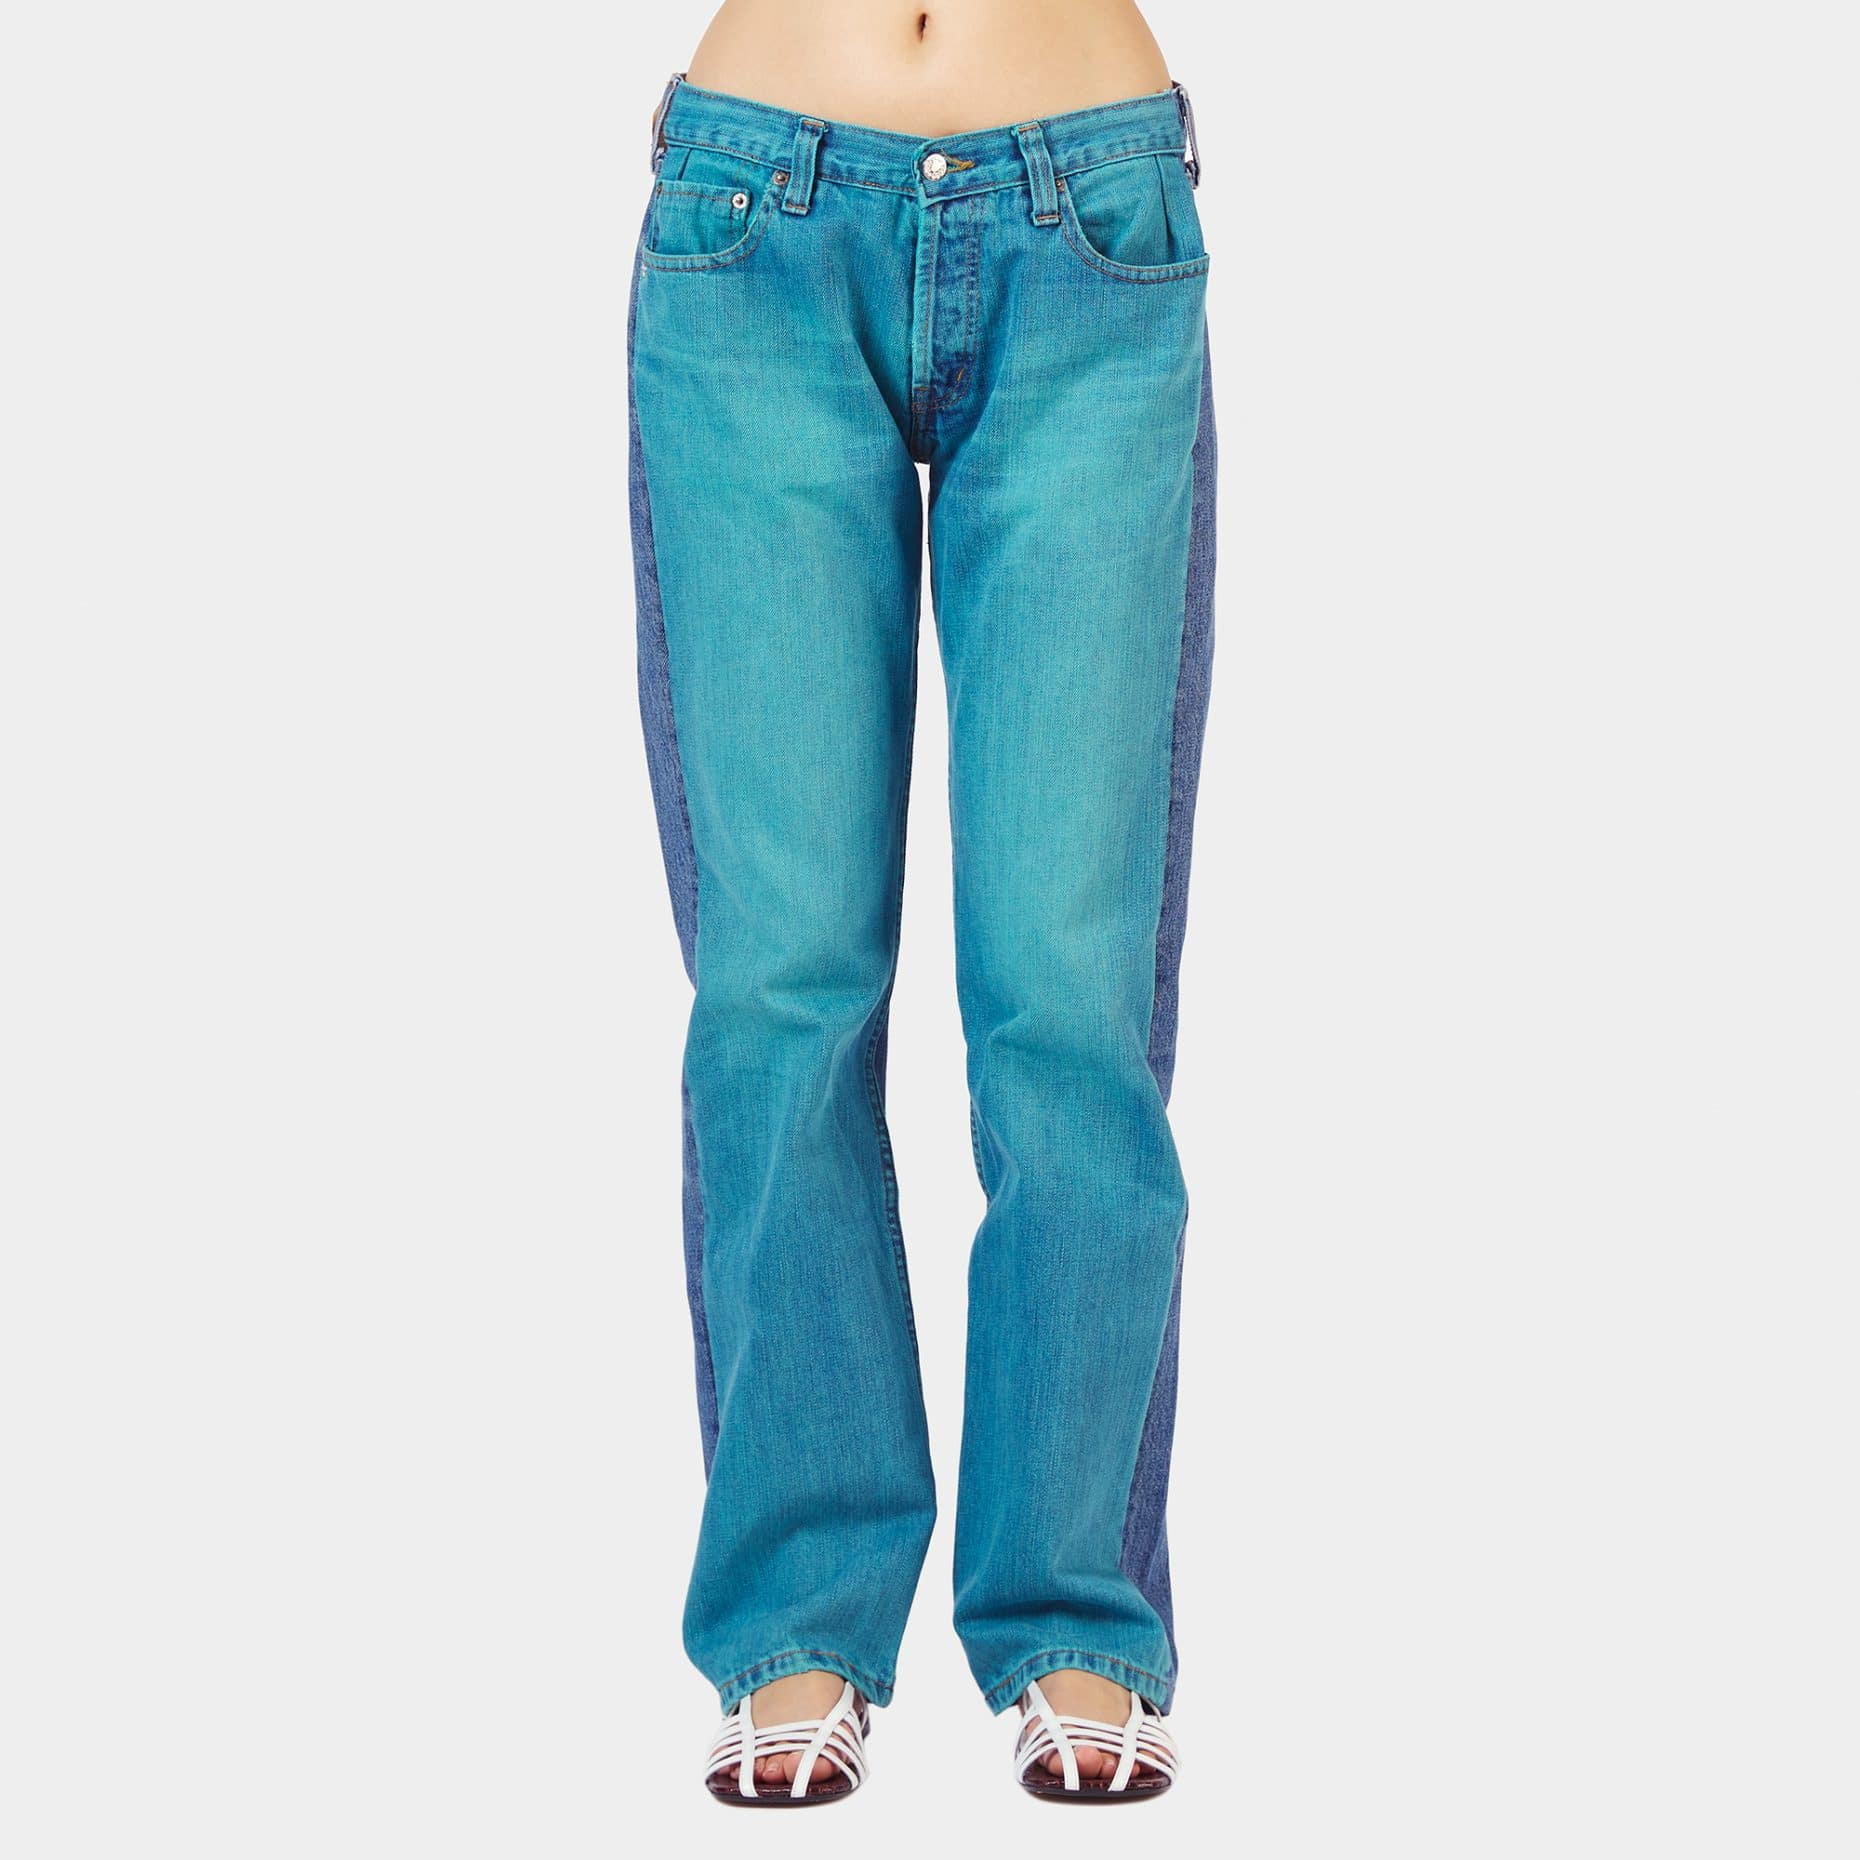 Bless Turquoise Front Jeans